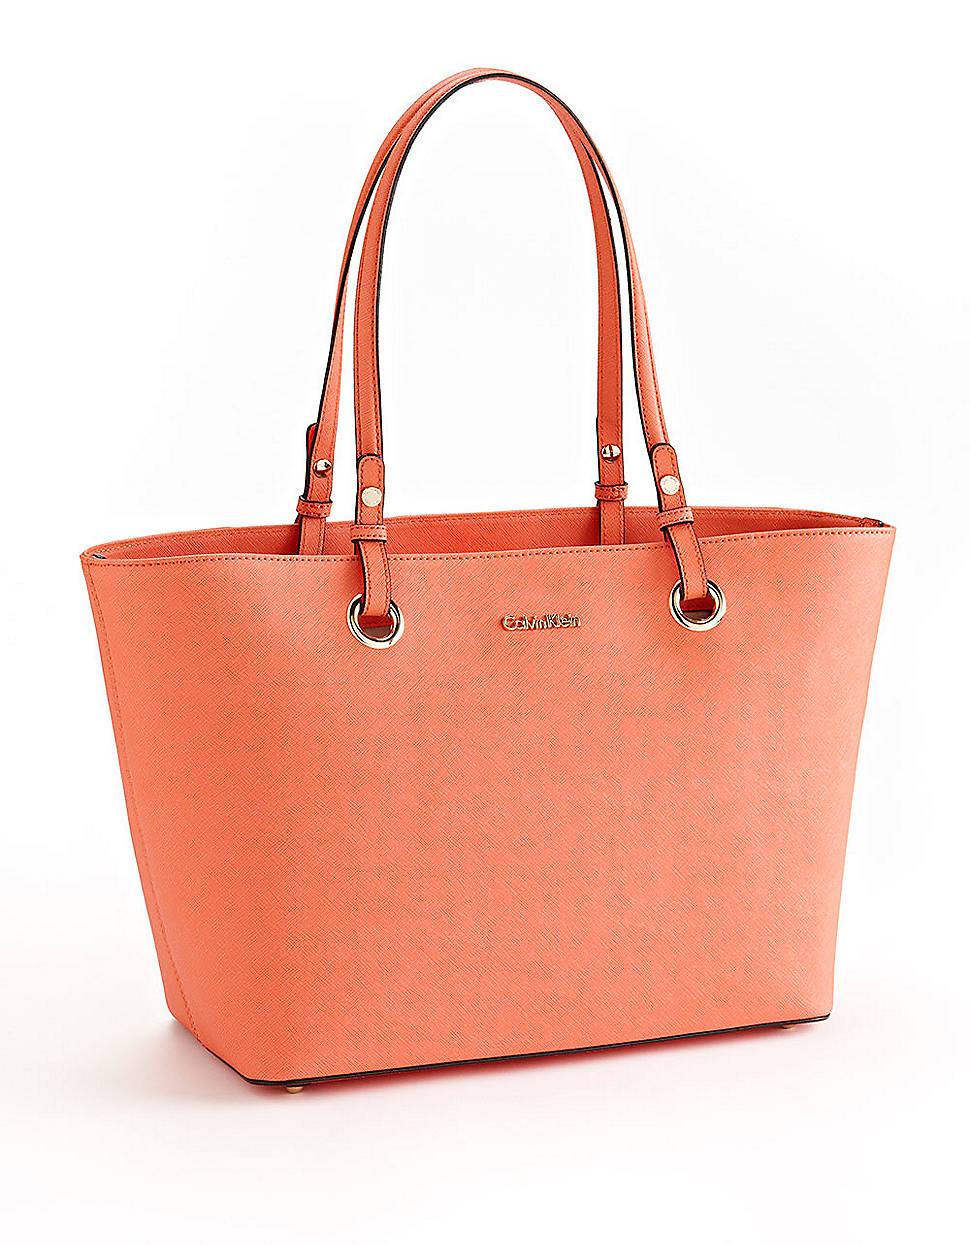 Calvin Klein Leather Tote Bag In Orange Lyst